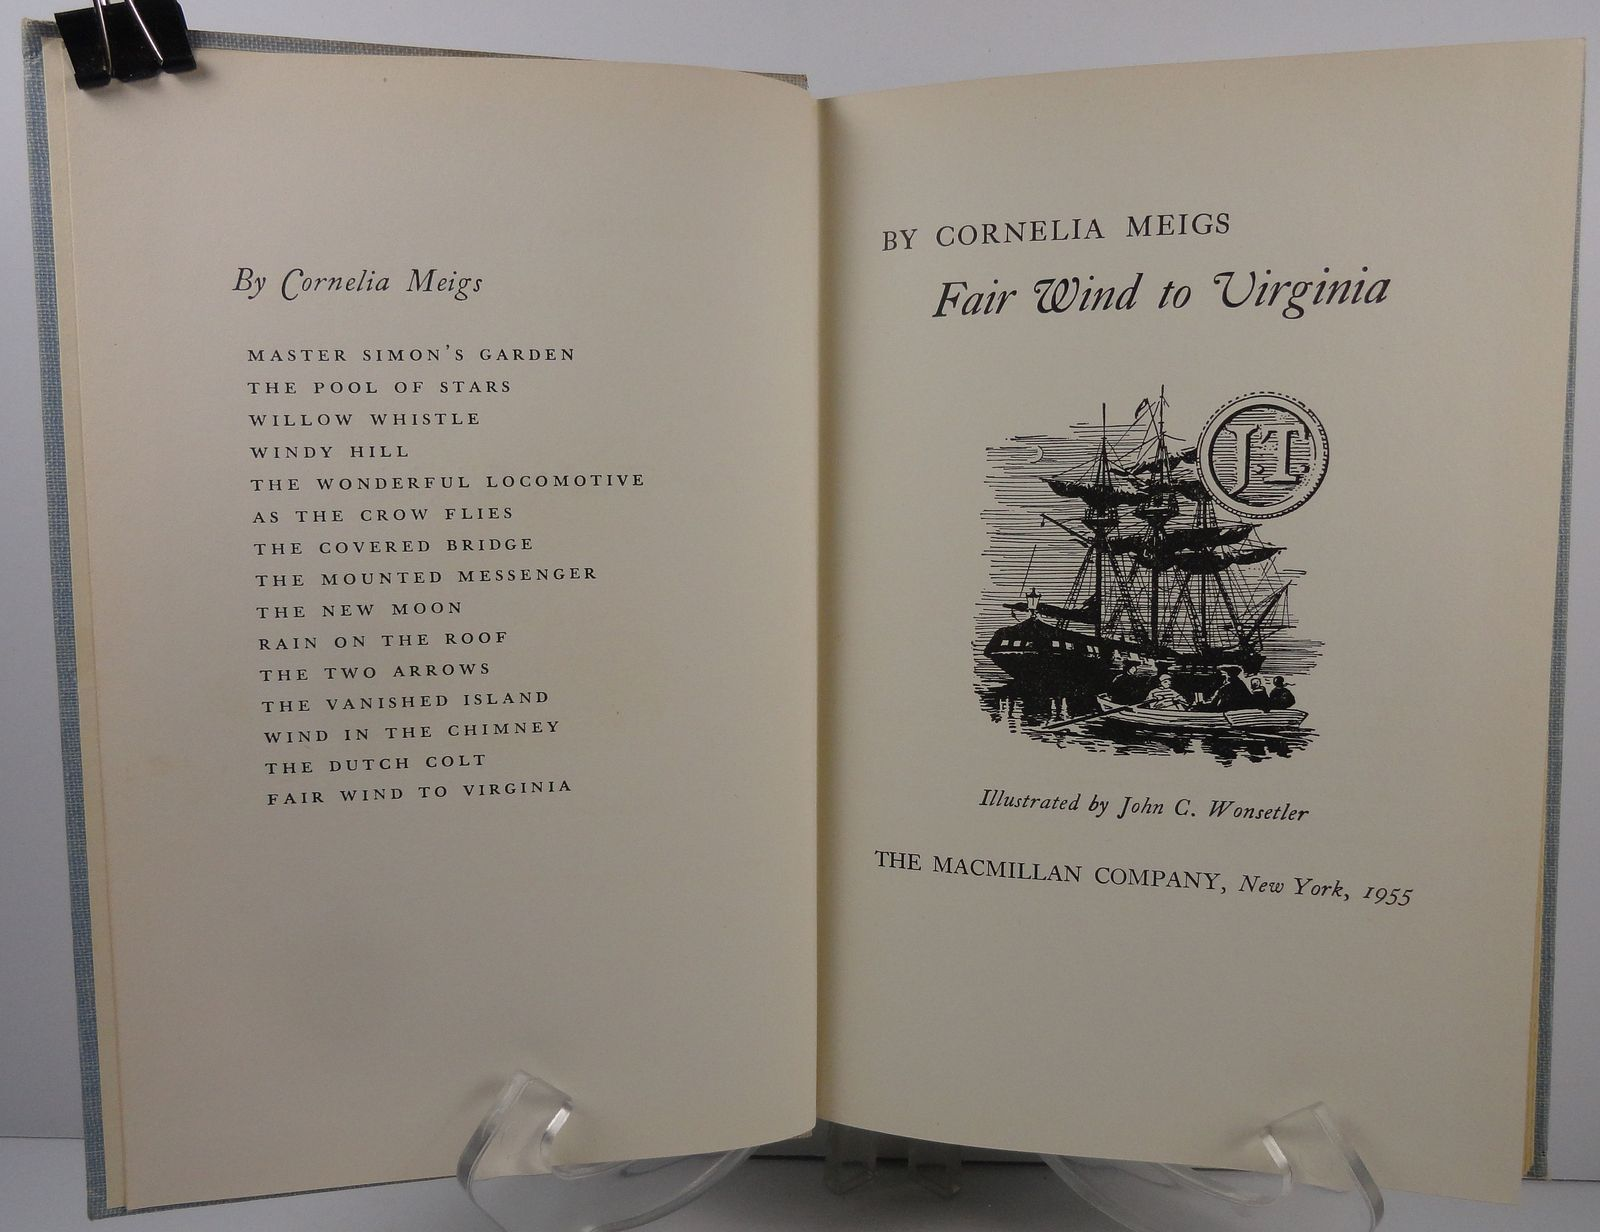 Fair Wind to Virginia by Cornelia Meigs 1955 Macmillan